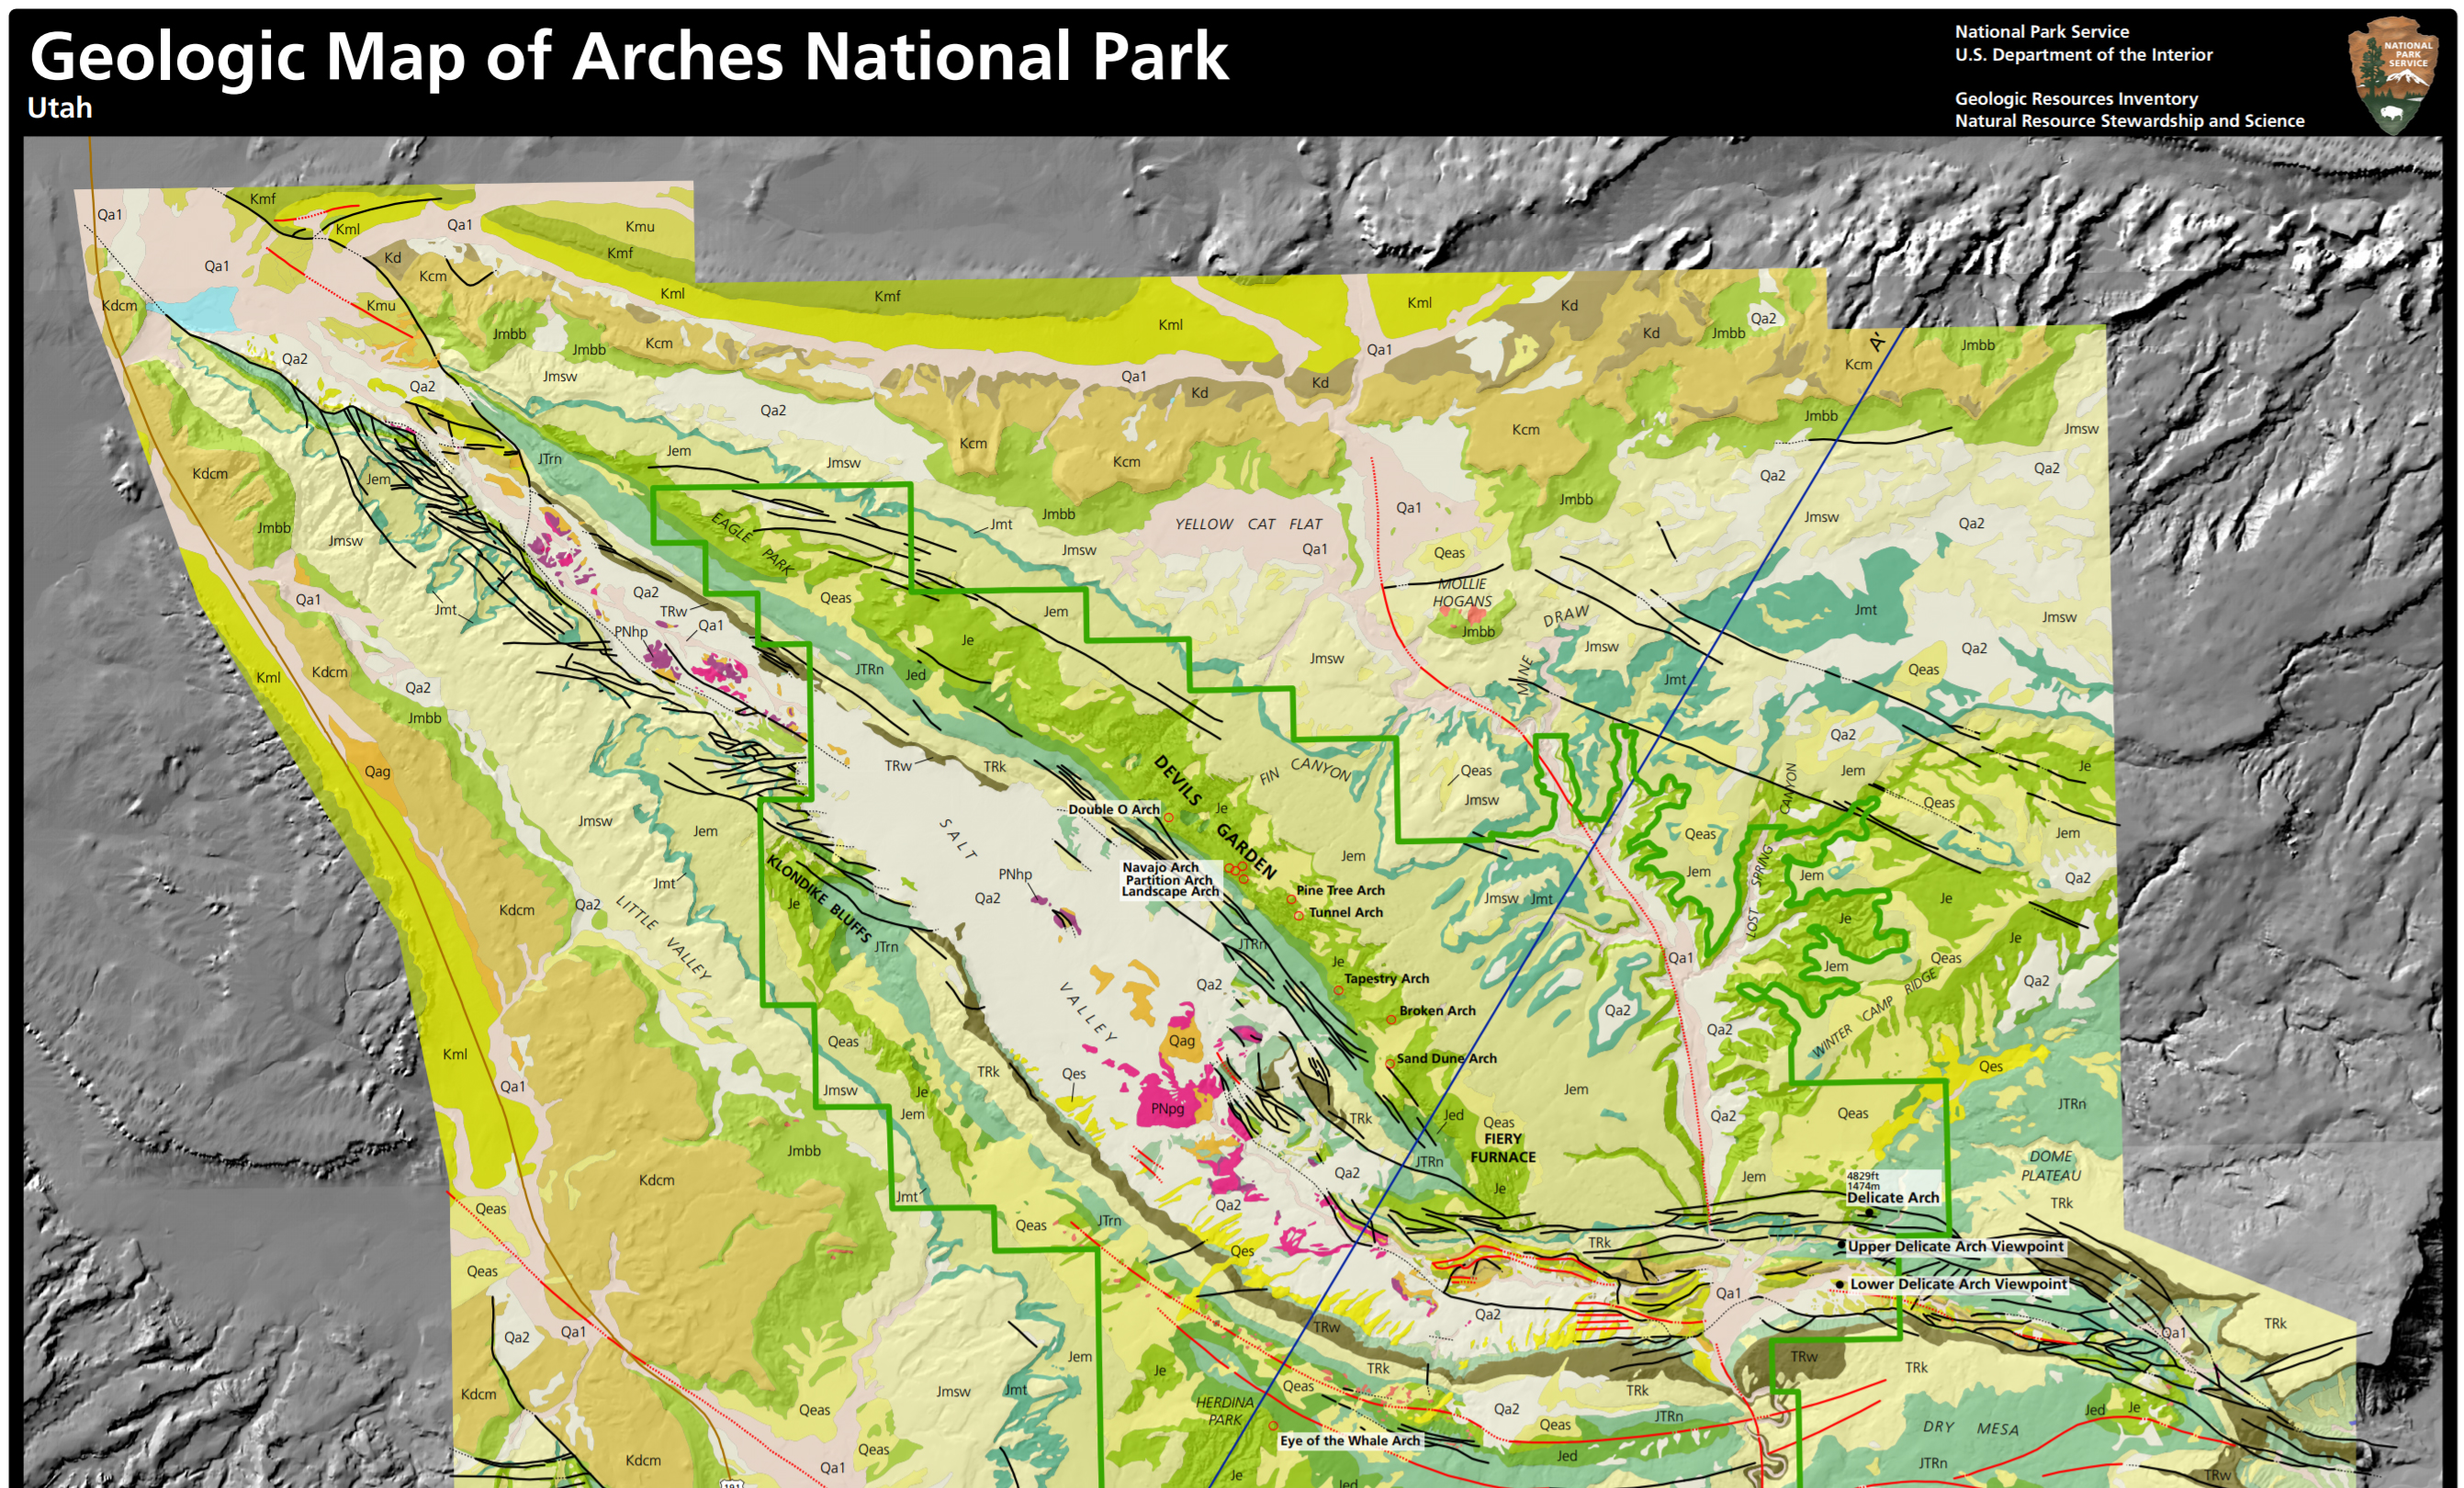 NPS Geodiversity Atlas—Arches National Park, Utah (U.S. ... on amistad national recreation area map, death valley map, chamizal national memorial map, zion national park trail map, redwood national and state parks map, denali national park and preserve map, city of rocks national reserve map, moab map, monument valley map, devils garden map, antelope canyon map, lake clark national park and preserve map, bering land bridge national preserve map, hawaii volcanoes national park map, grand canyon map, canyonlands national park road map, arizona map, bryce canyon map, sequoia national park map, national park of american samoa map,